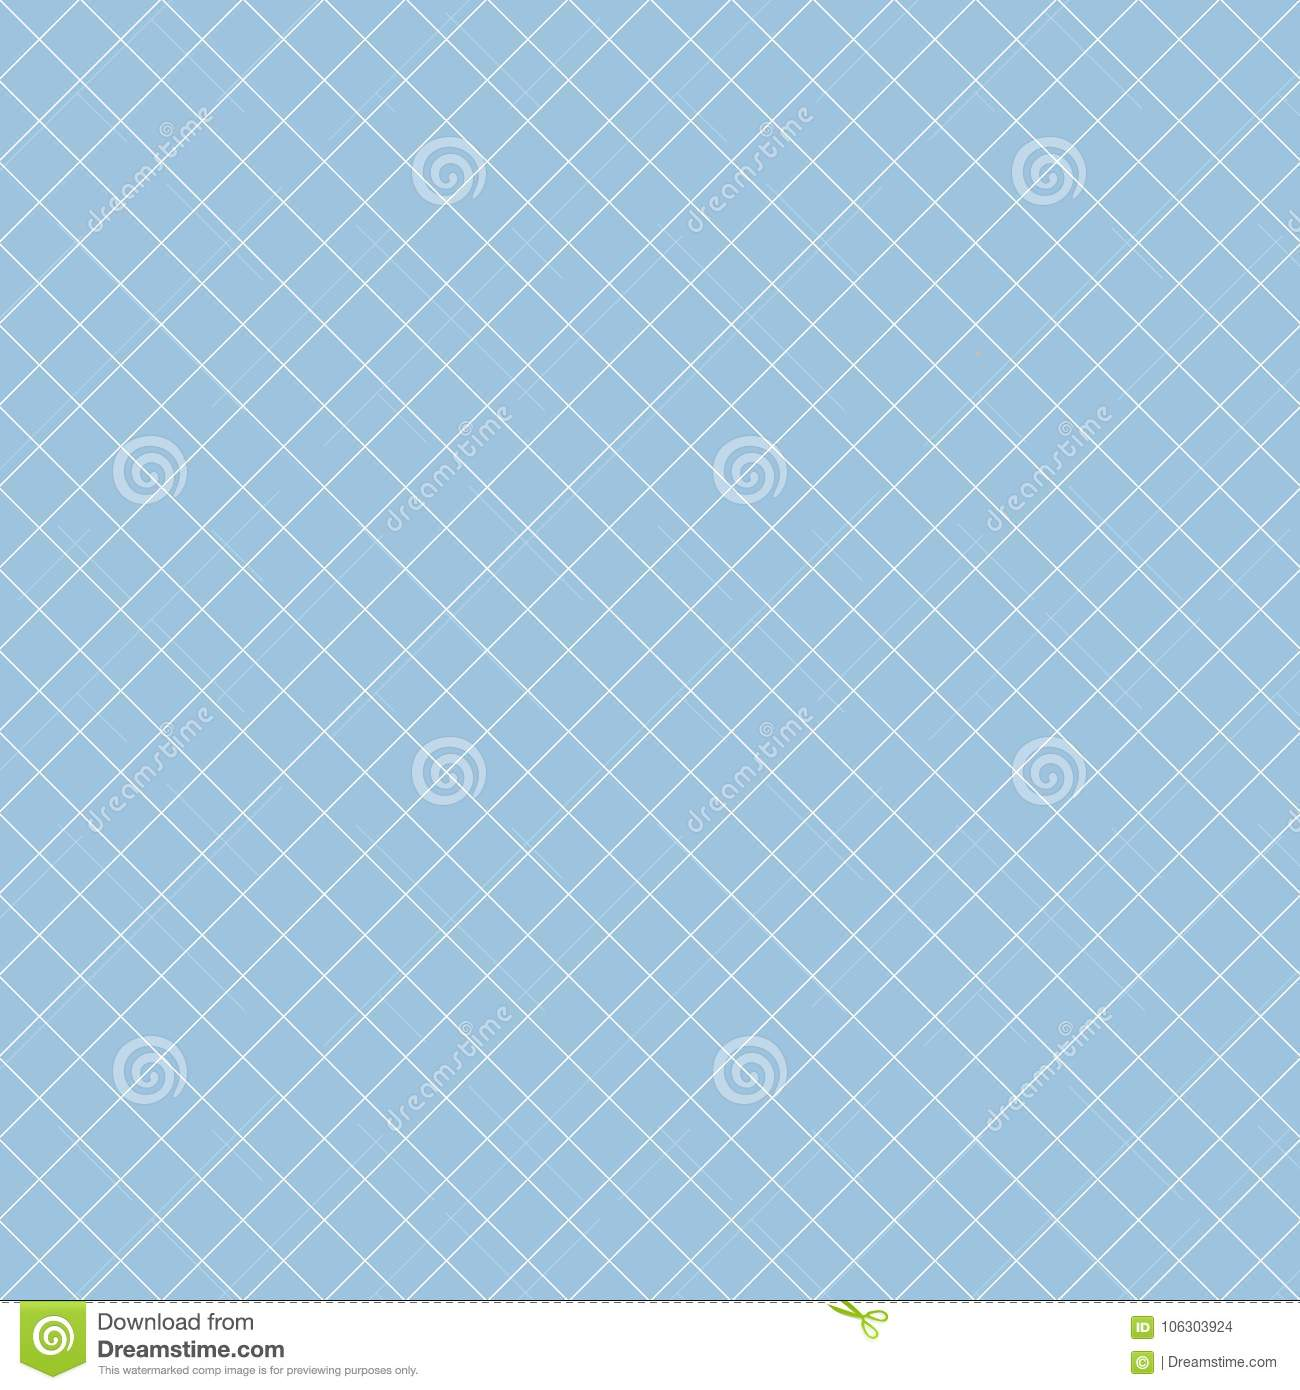 Light Blue And White Crosshatch Repeat Pattern Background